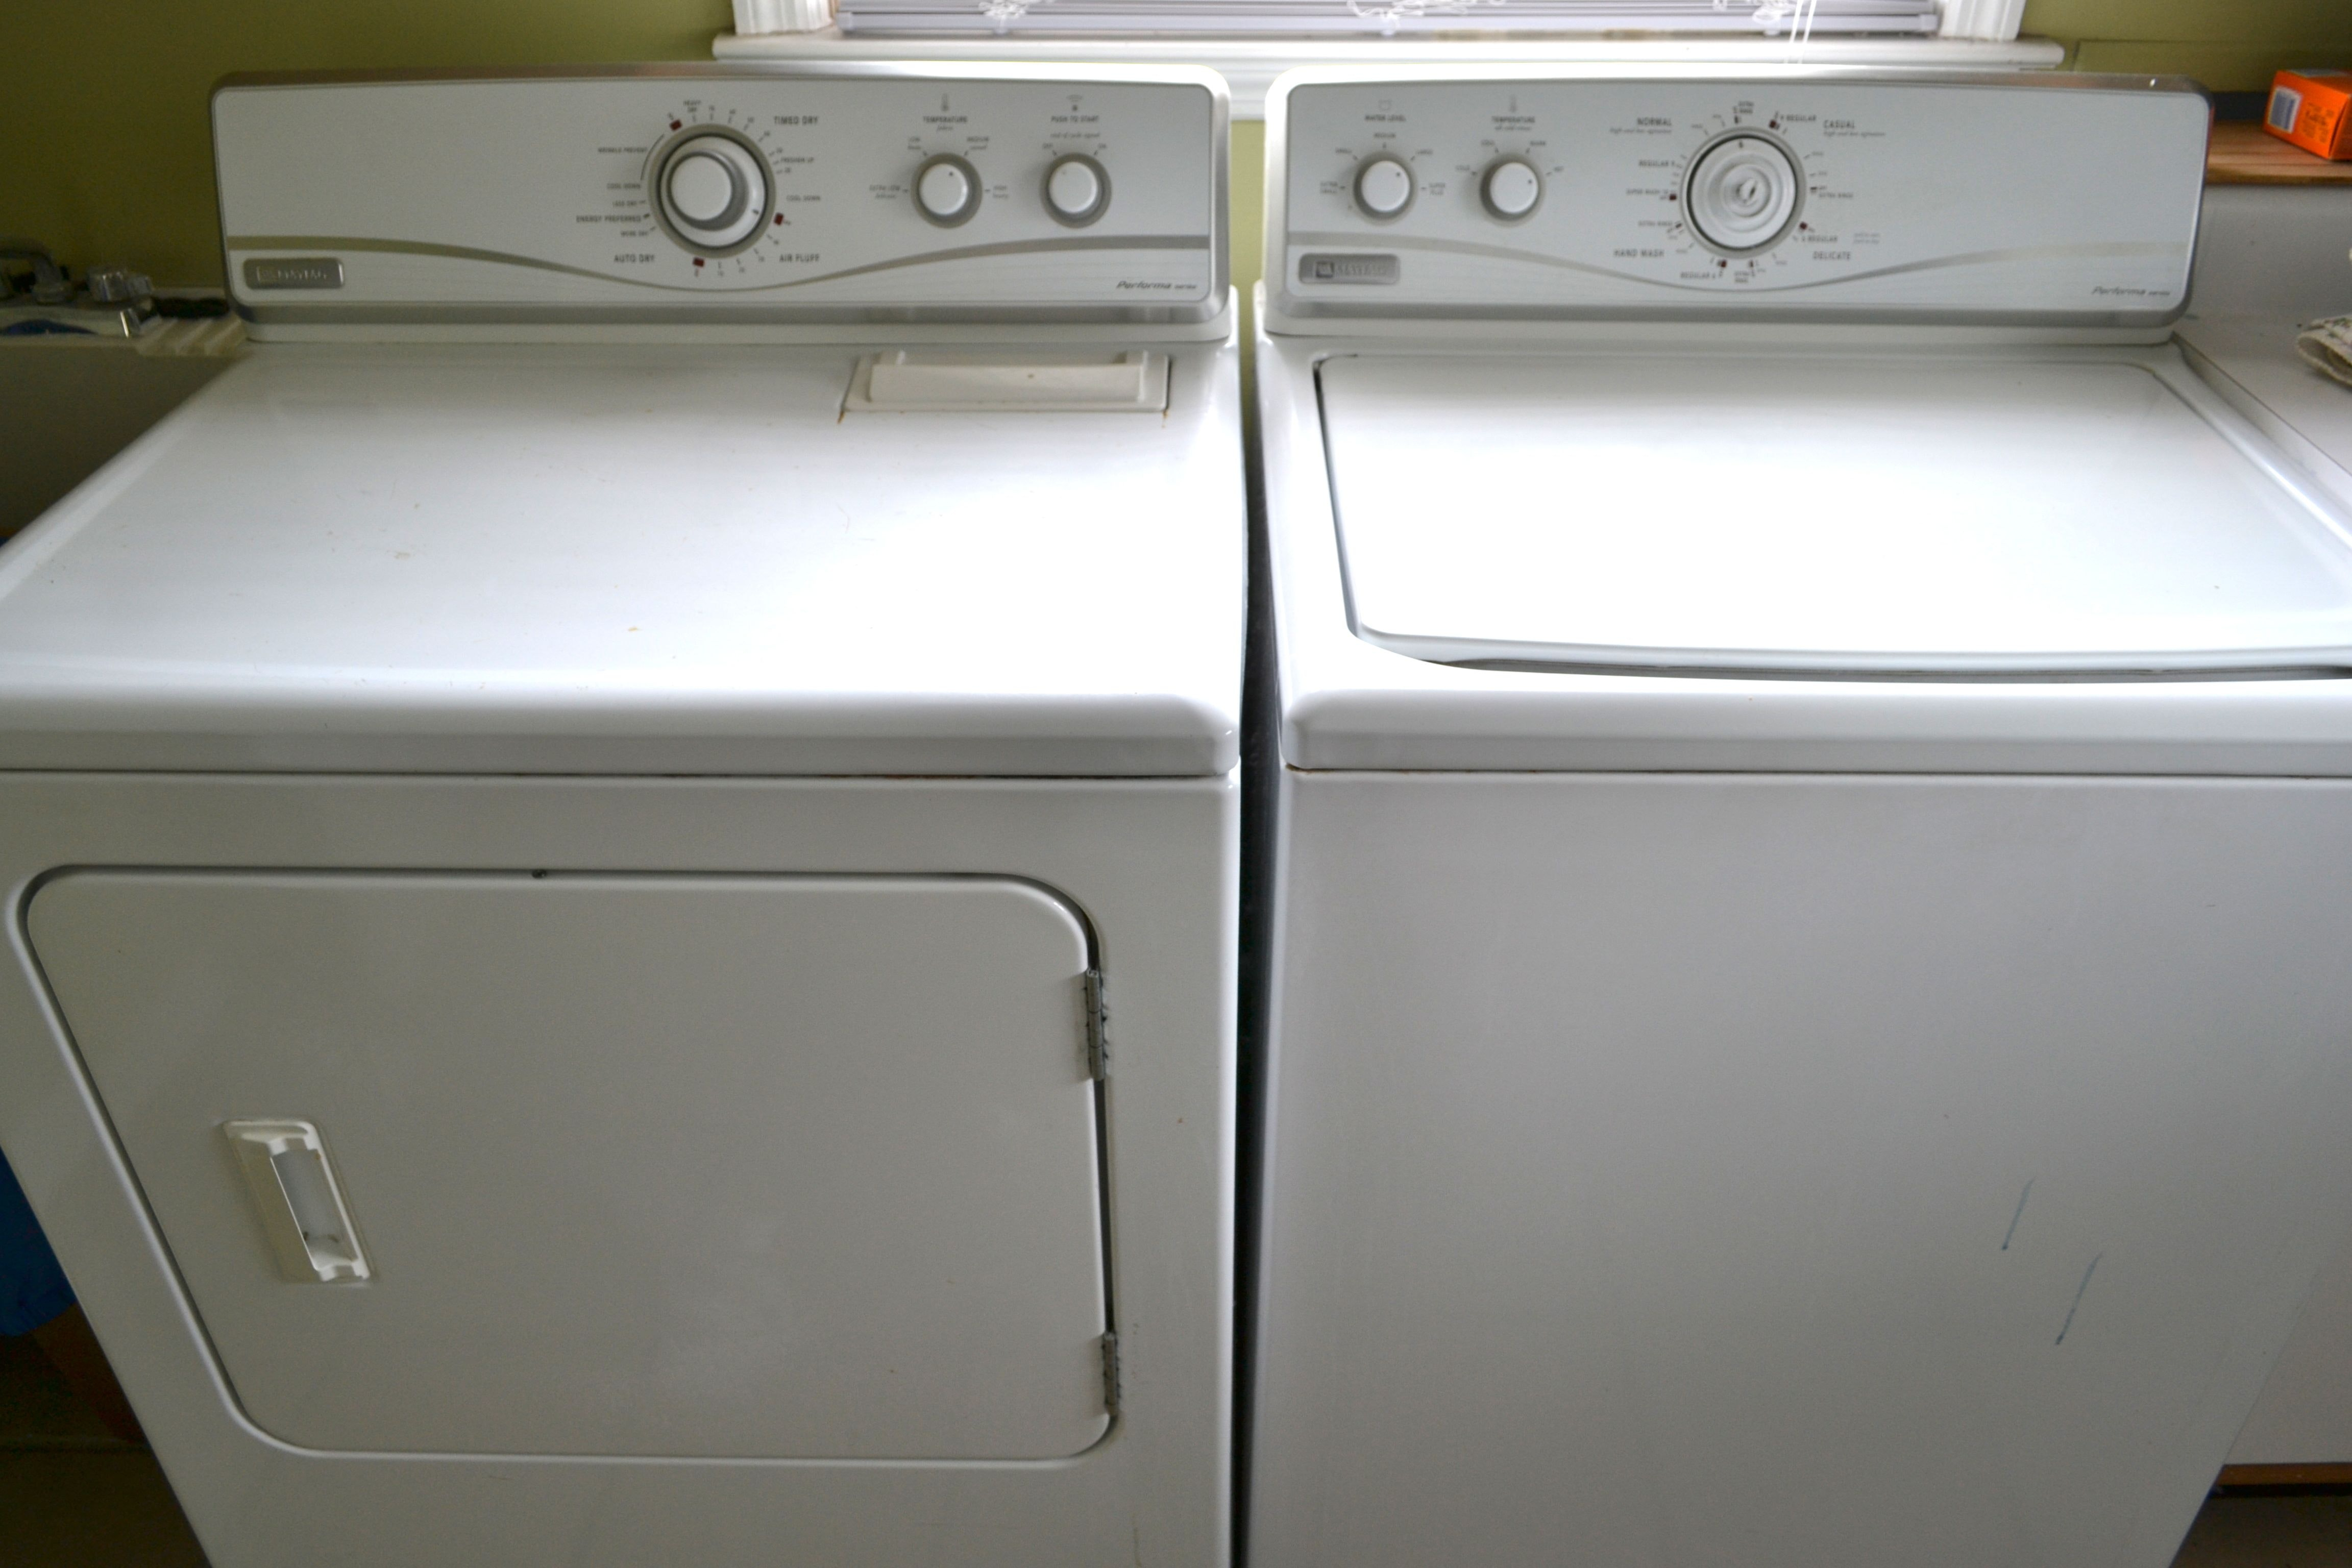 Maytag Washer and Dryer : EBTH